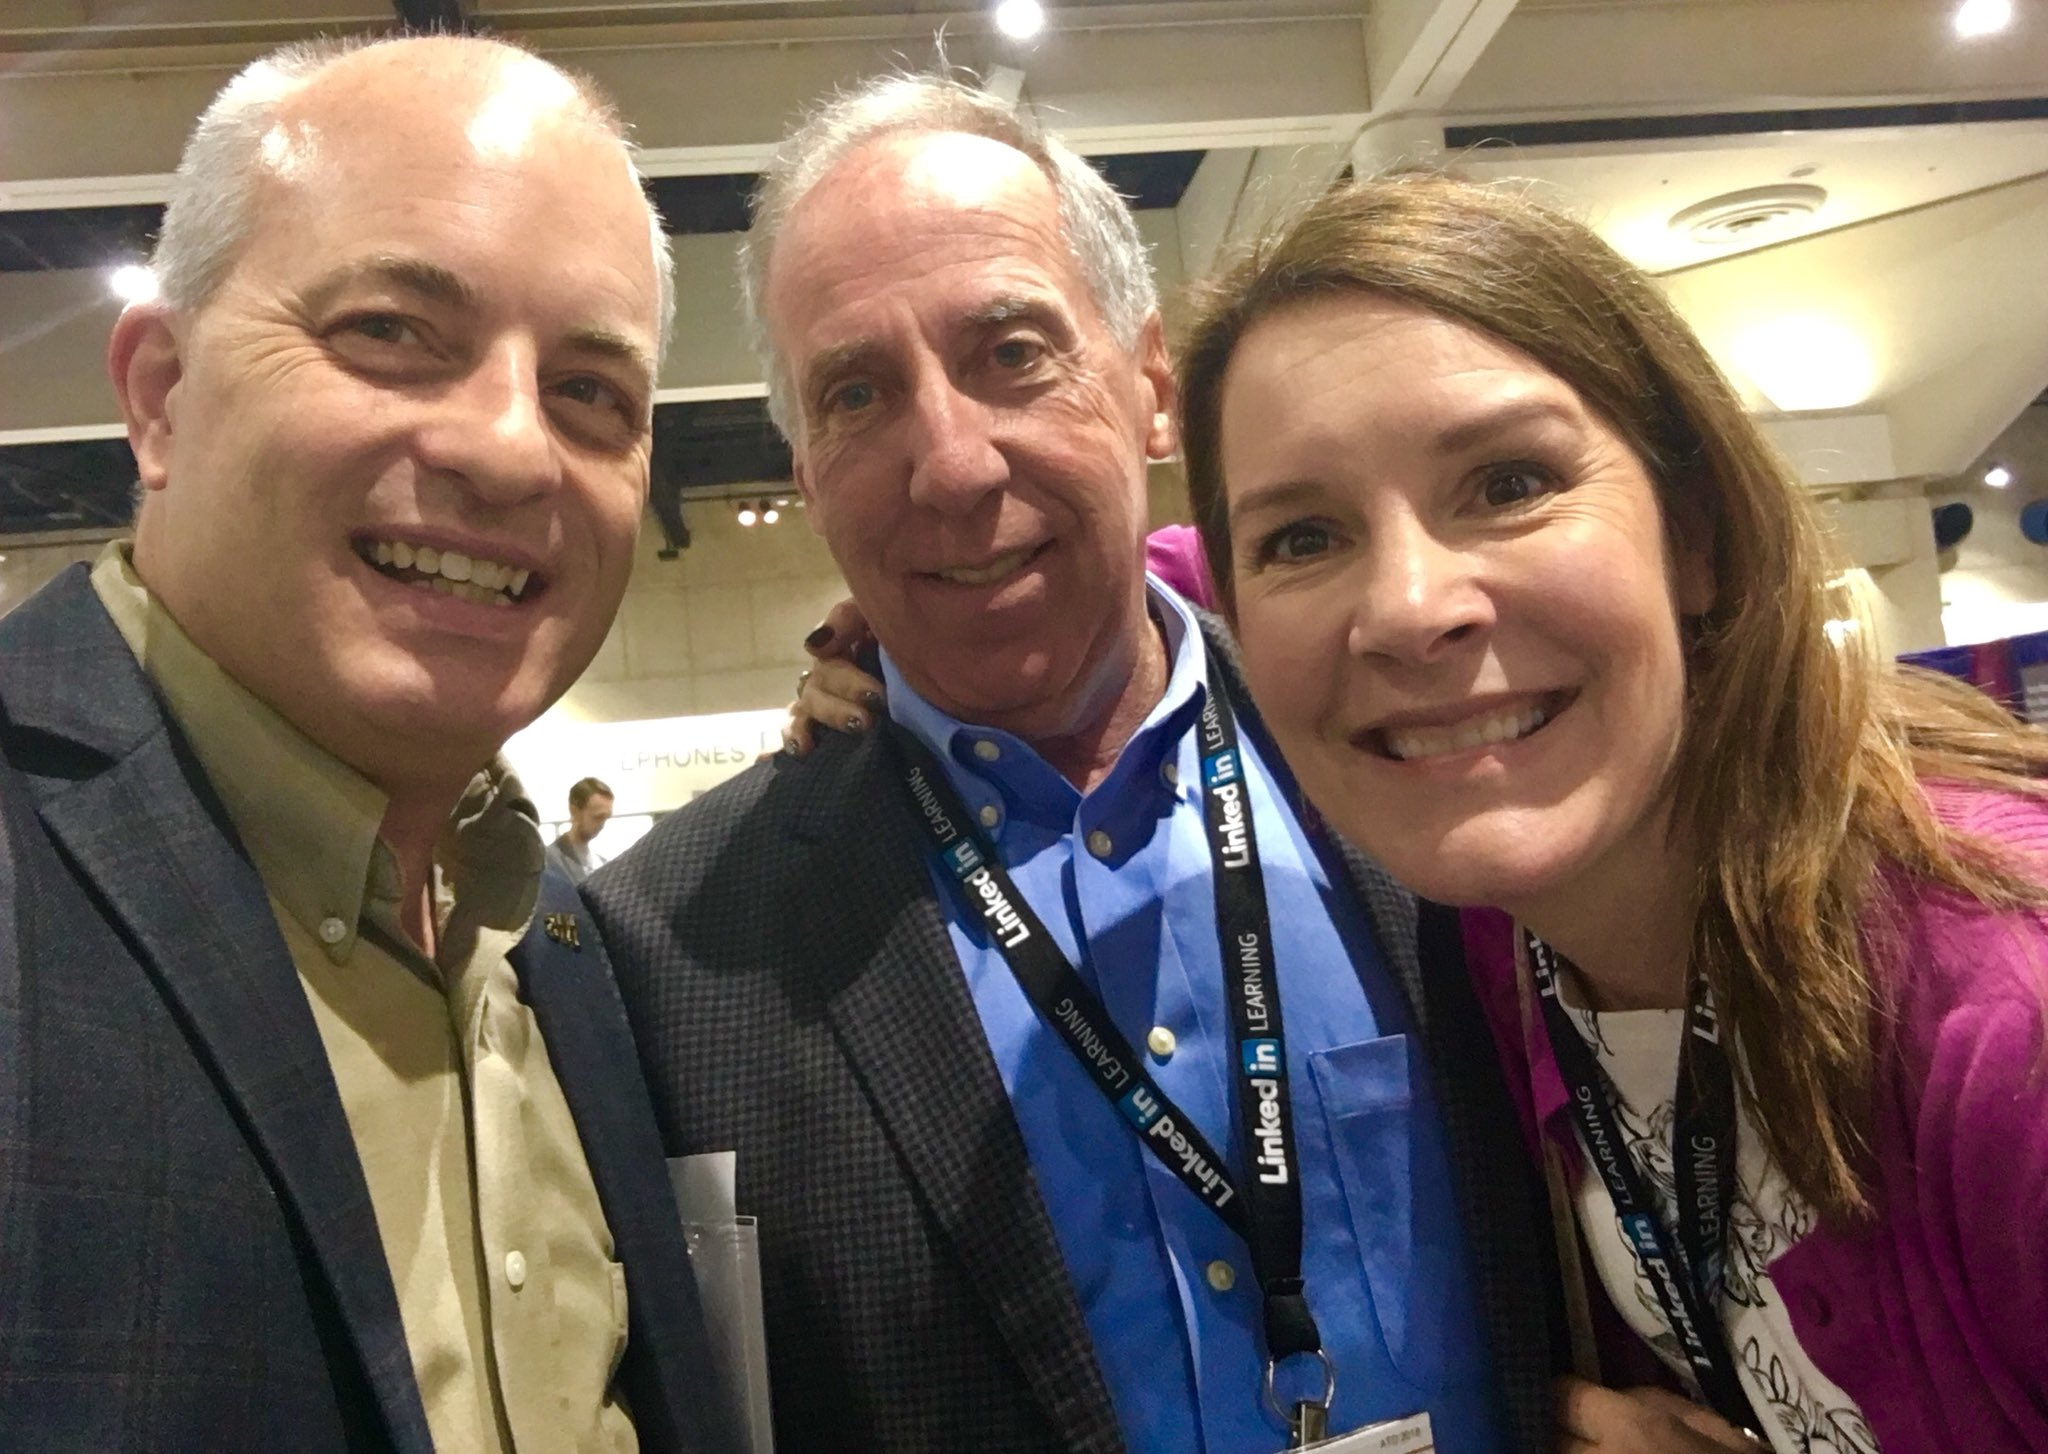 #ATD2018 #ATDReunionSelfie with the brilliant and inventive dynamic duo: @Jim_Kirkpatrick and @WkKirkpatrick https://t.co/VPmuD9pnyG